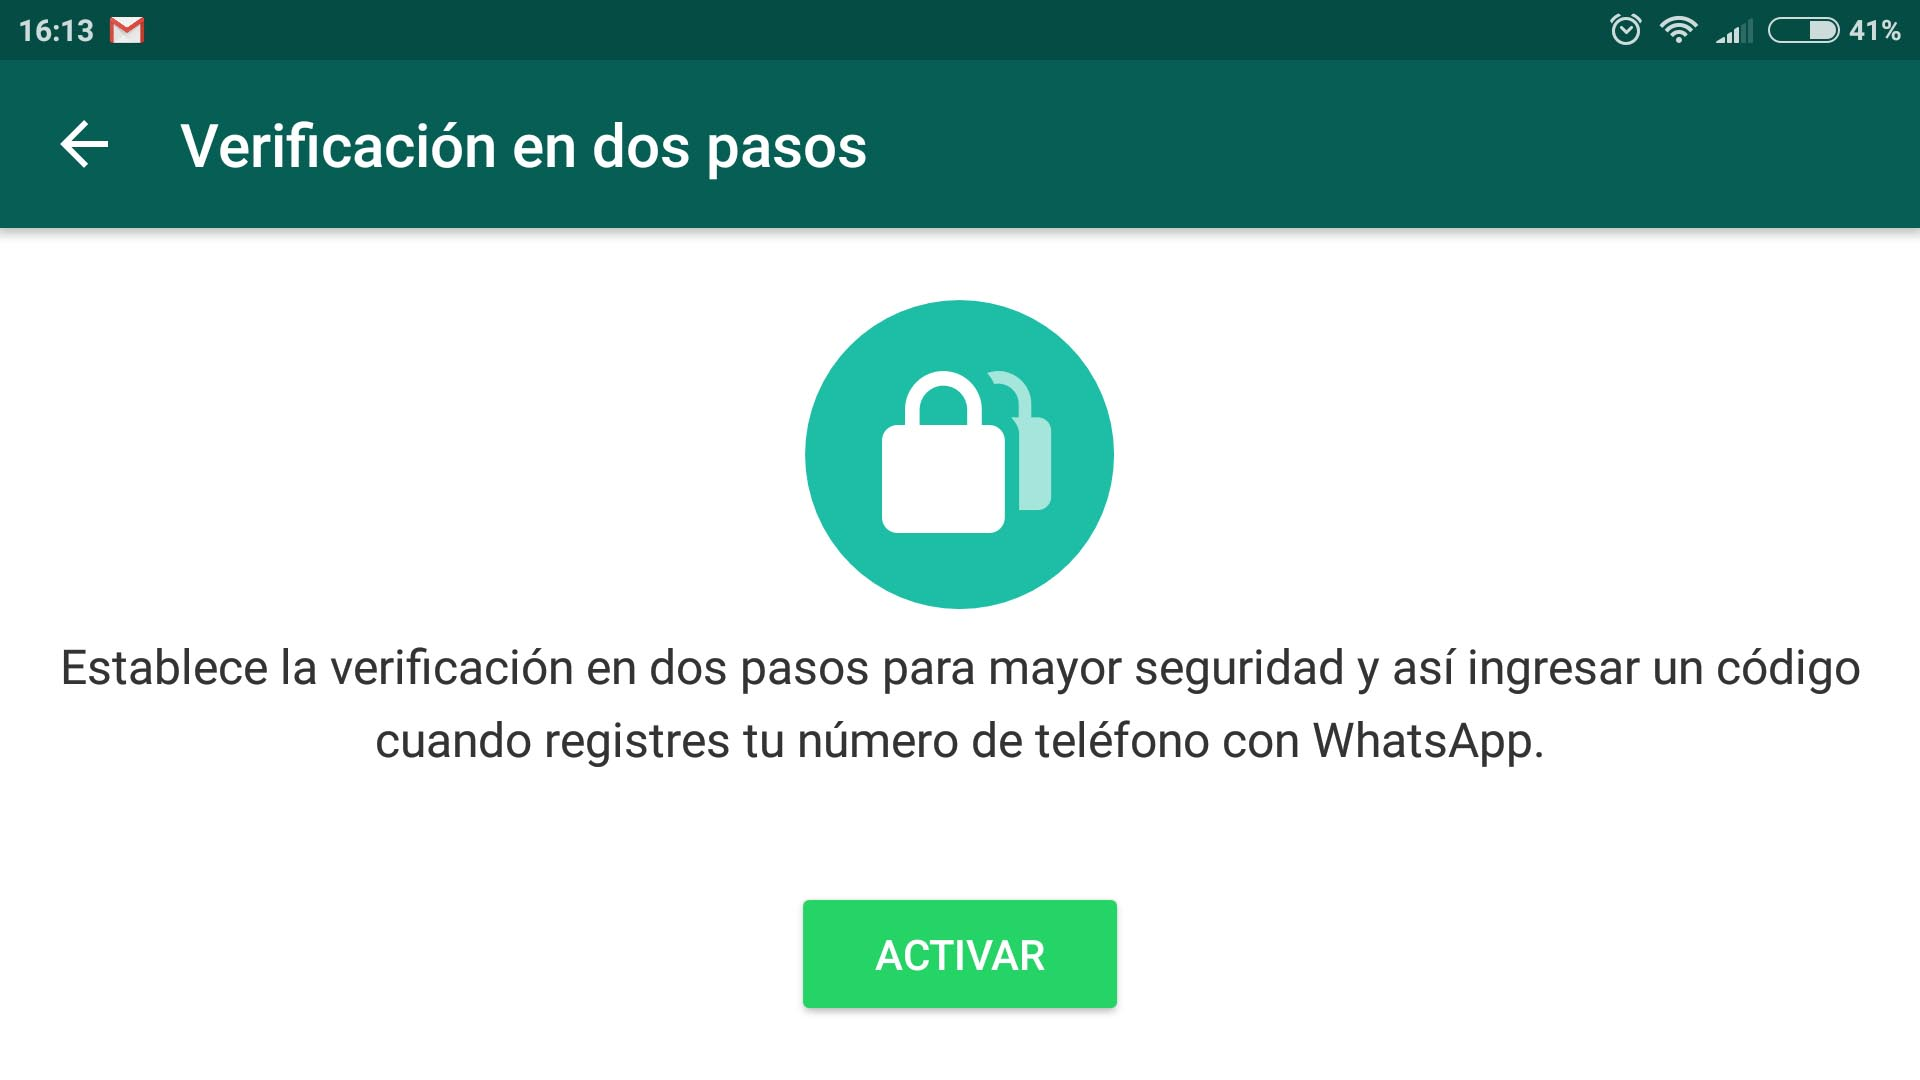 whatsapp-verificacion-en-dos-pasos-screenshot_2016-11-10-16-13-05-944_com-copia